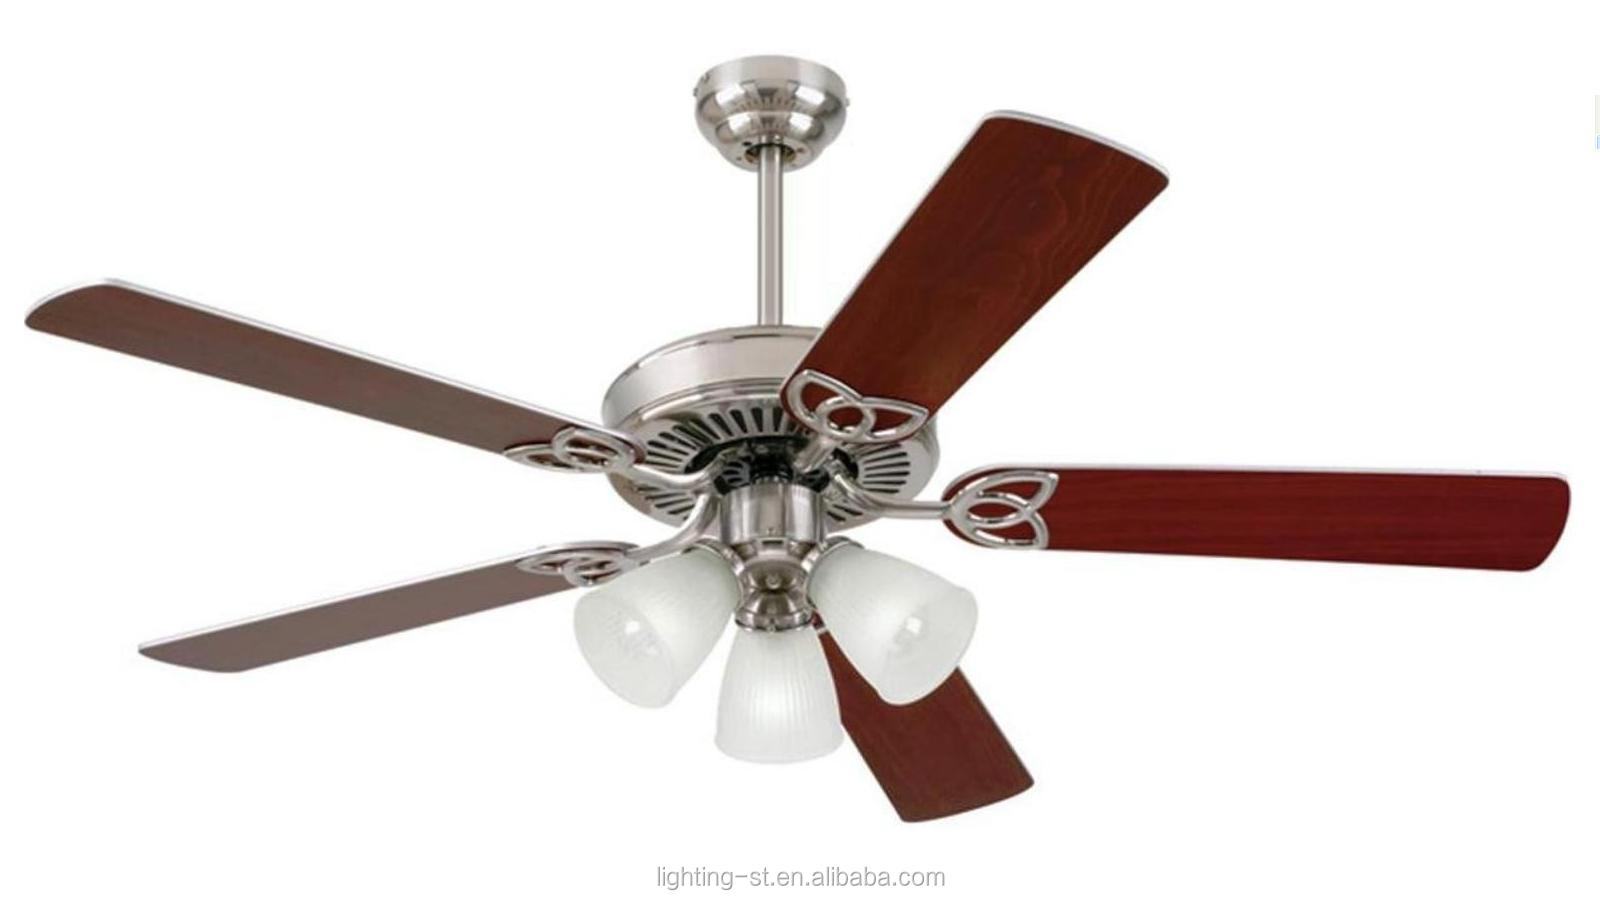 Hungter Buildder Plus 52-Inch Ceiling Fan with Five Brazilian Cherry/Harvest Mahogany Blades and Swirled frost Glass Light